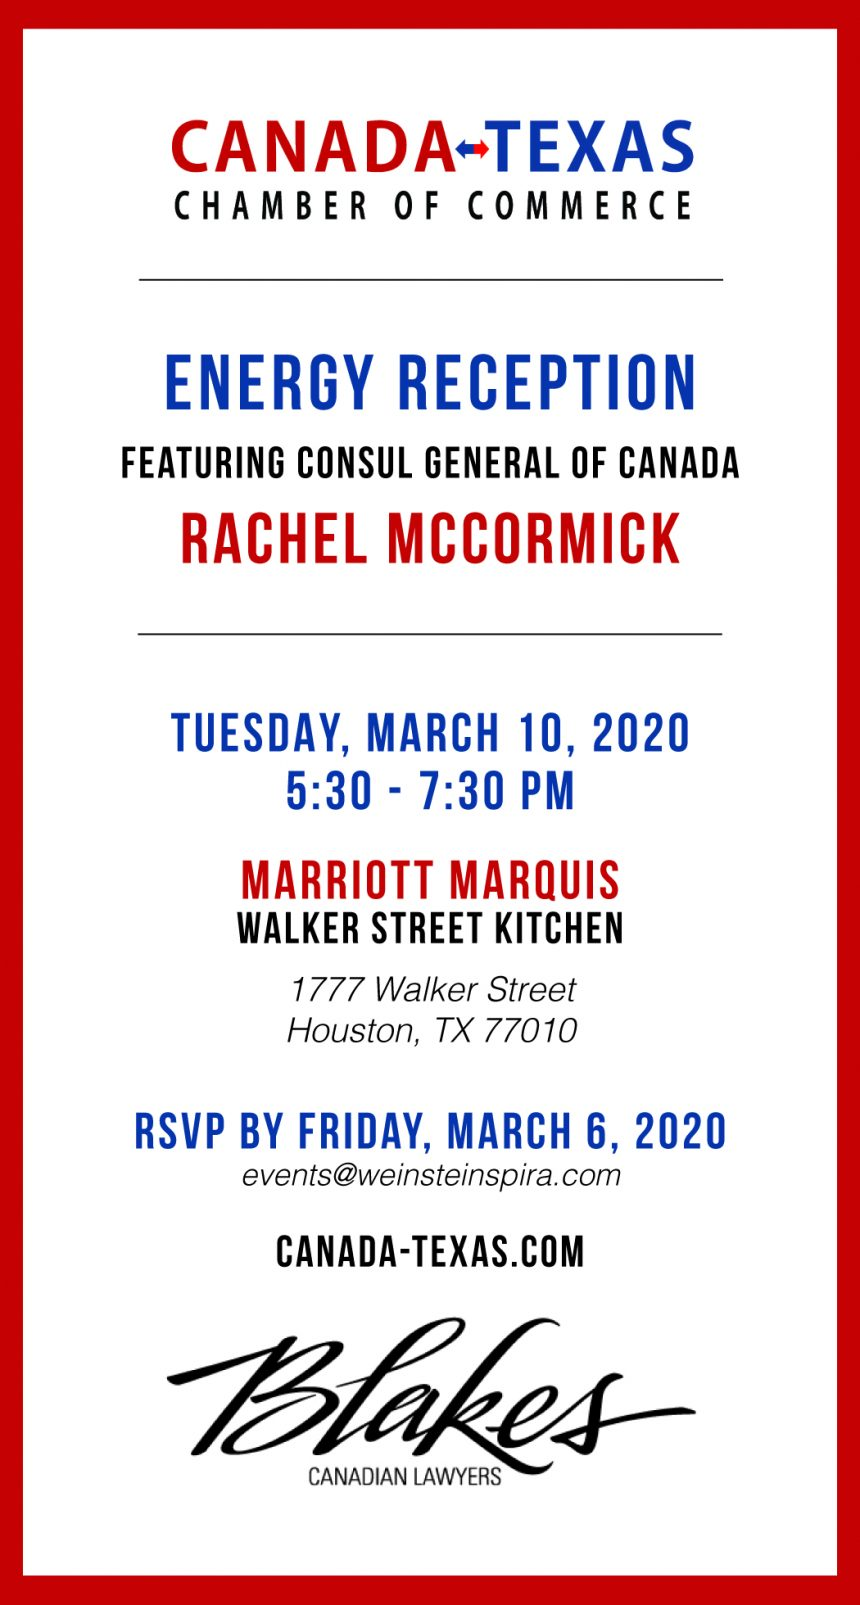 Energy Reception featuring Consul General of Canada – Rachel McCormick